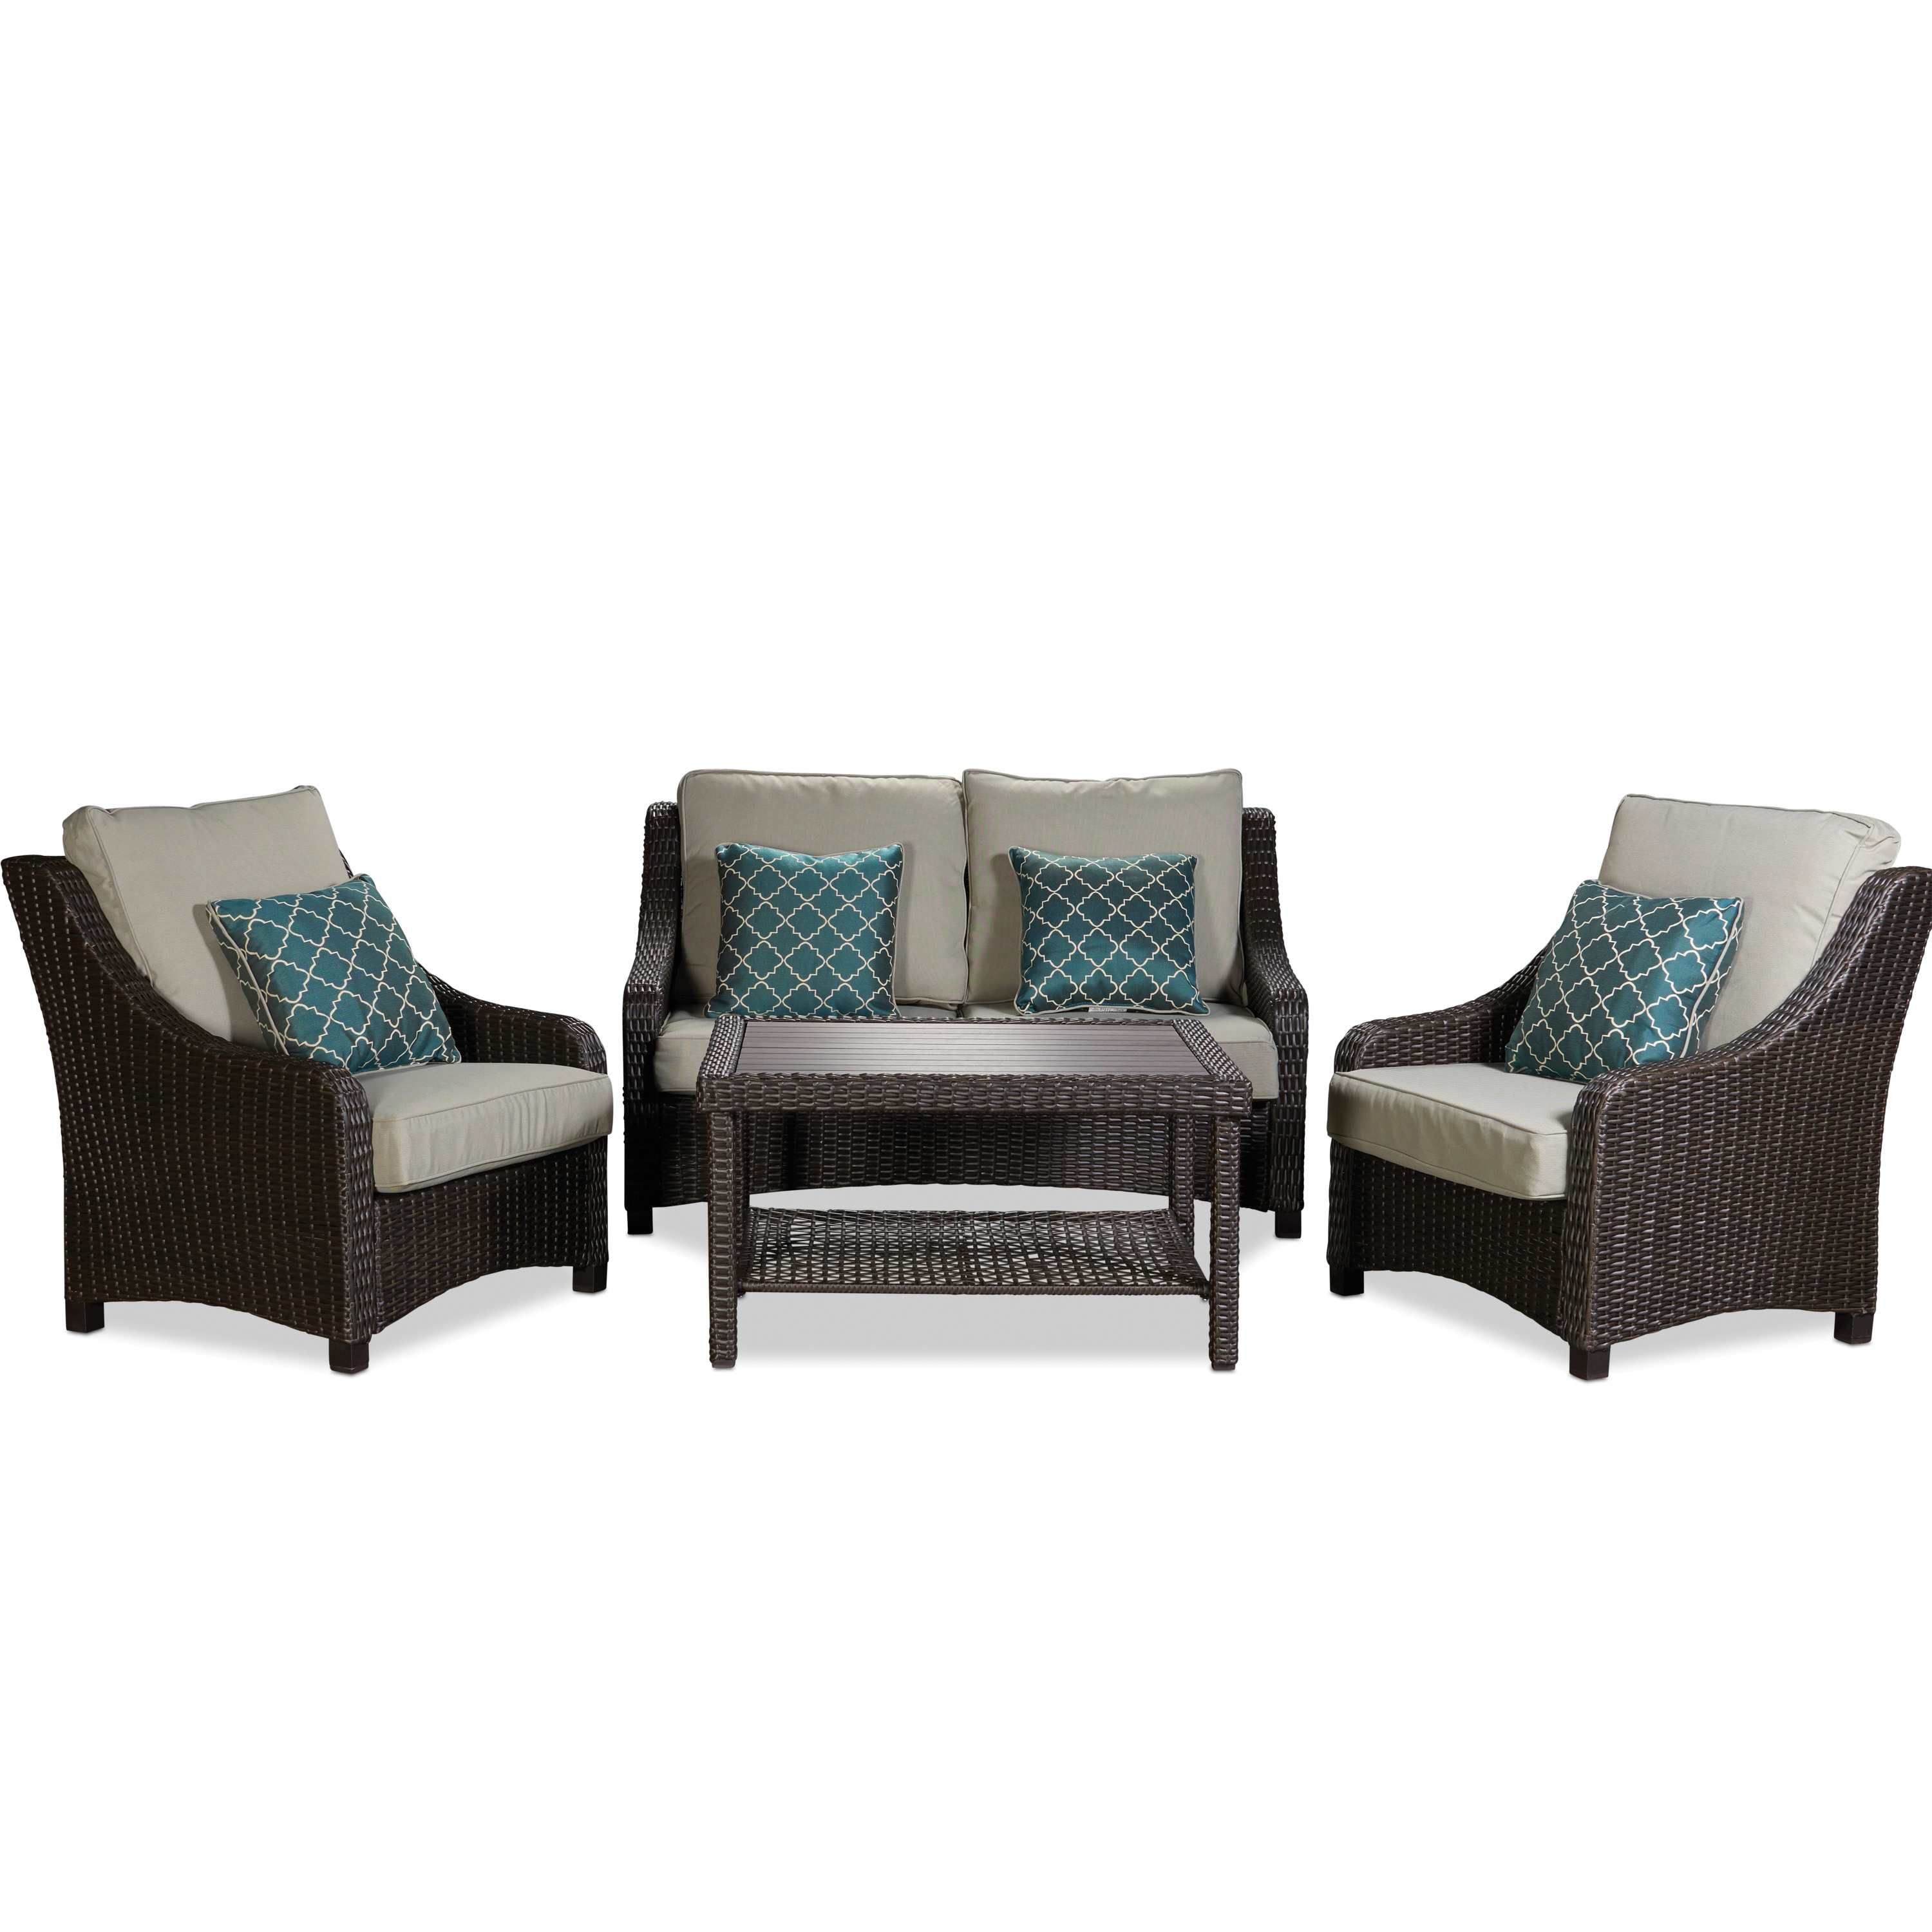 Outdoor Furniture - Naples 4 Piece Seating